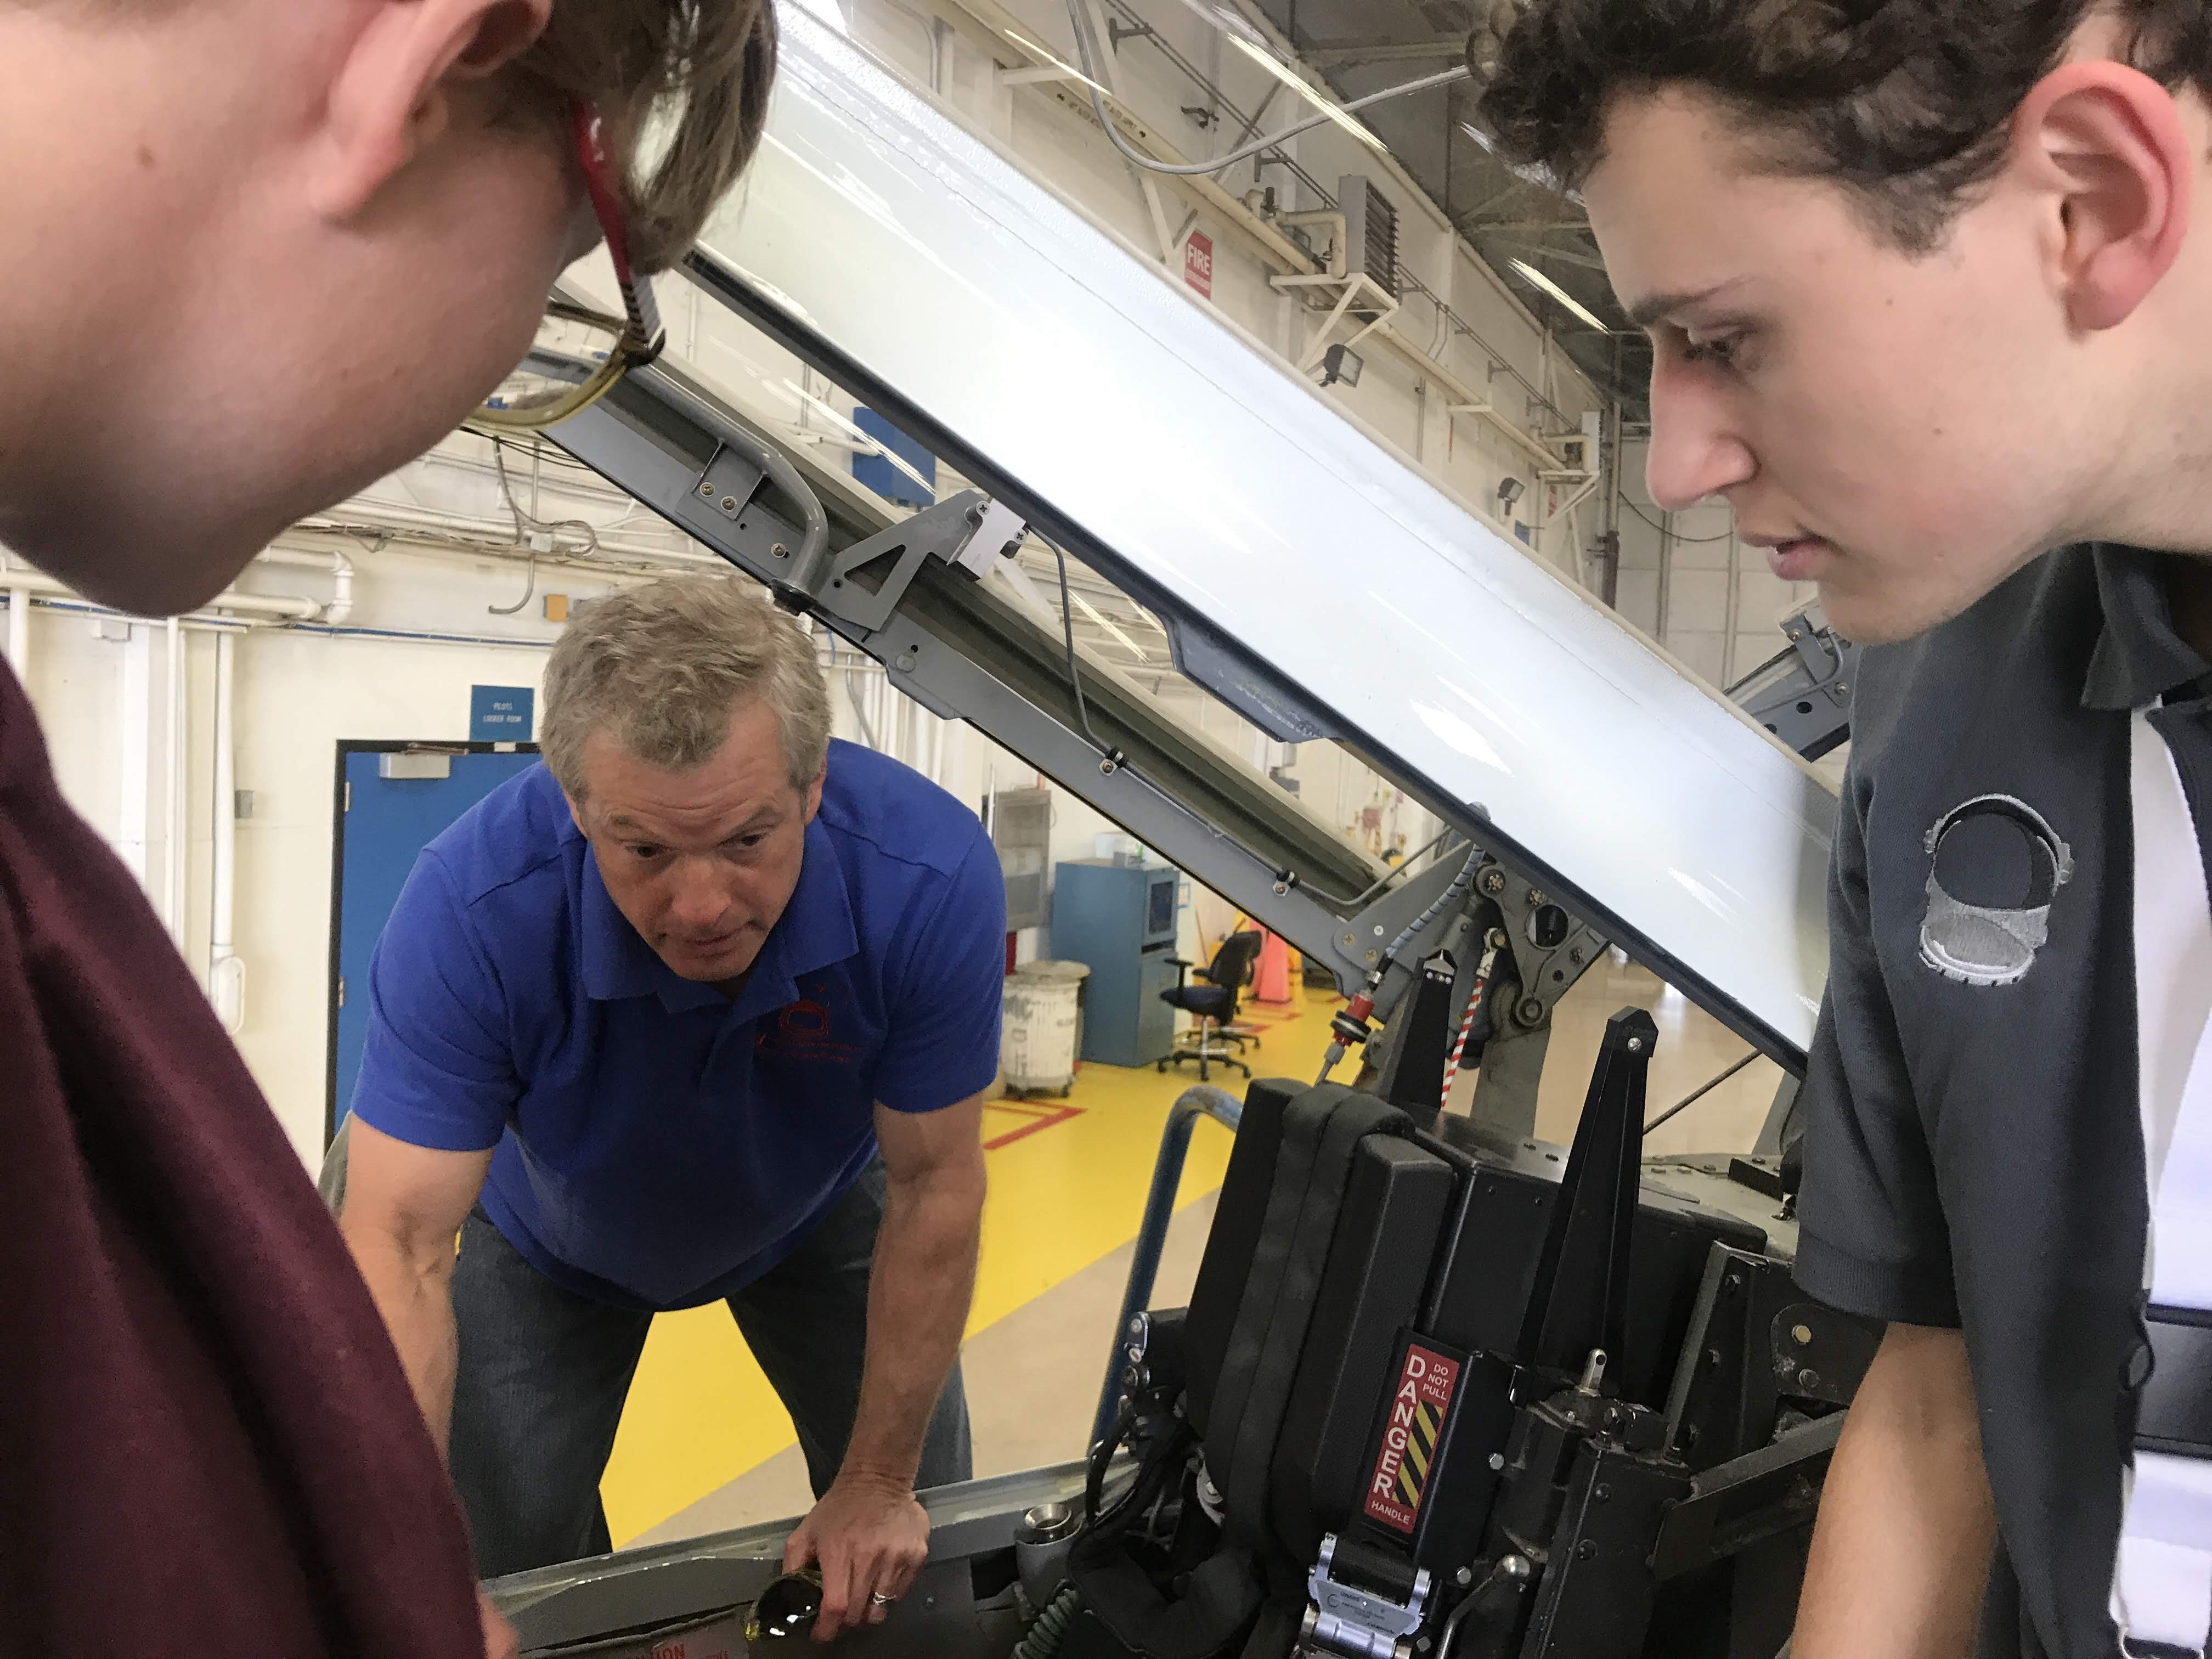 Dr. Steve Swanson and VIP students examining spacecraft